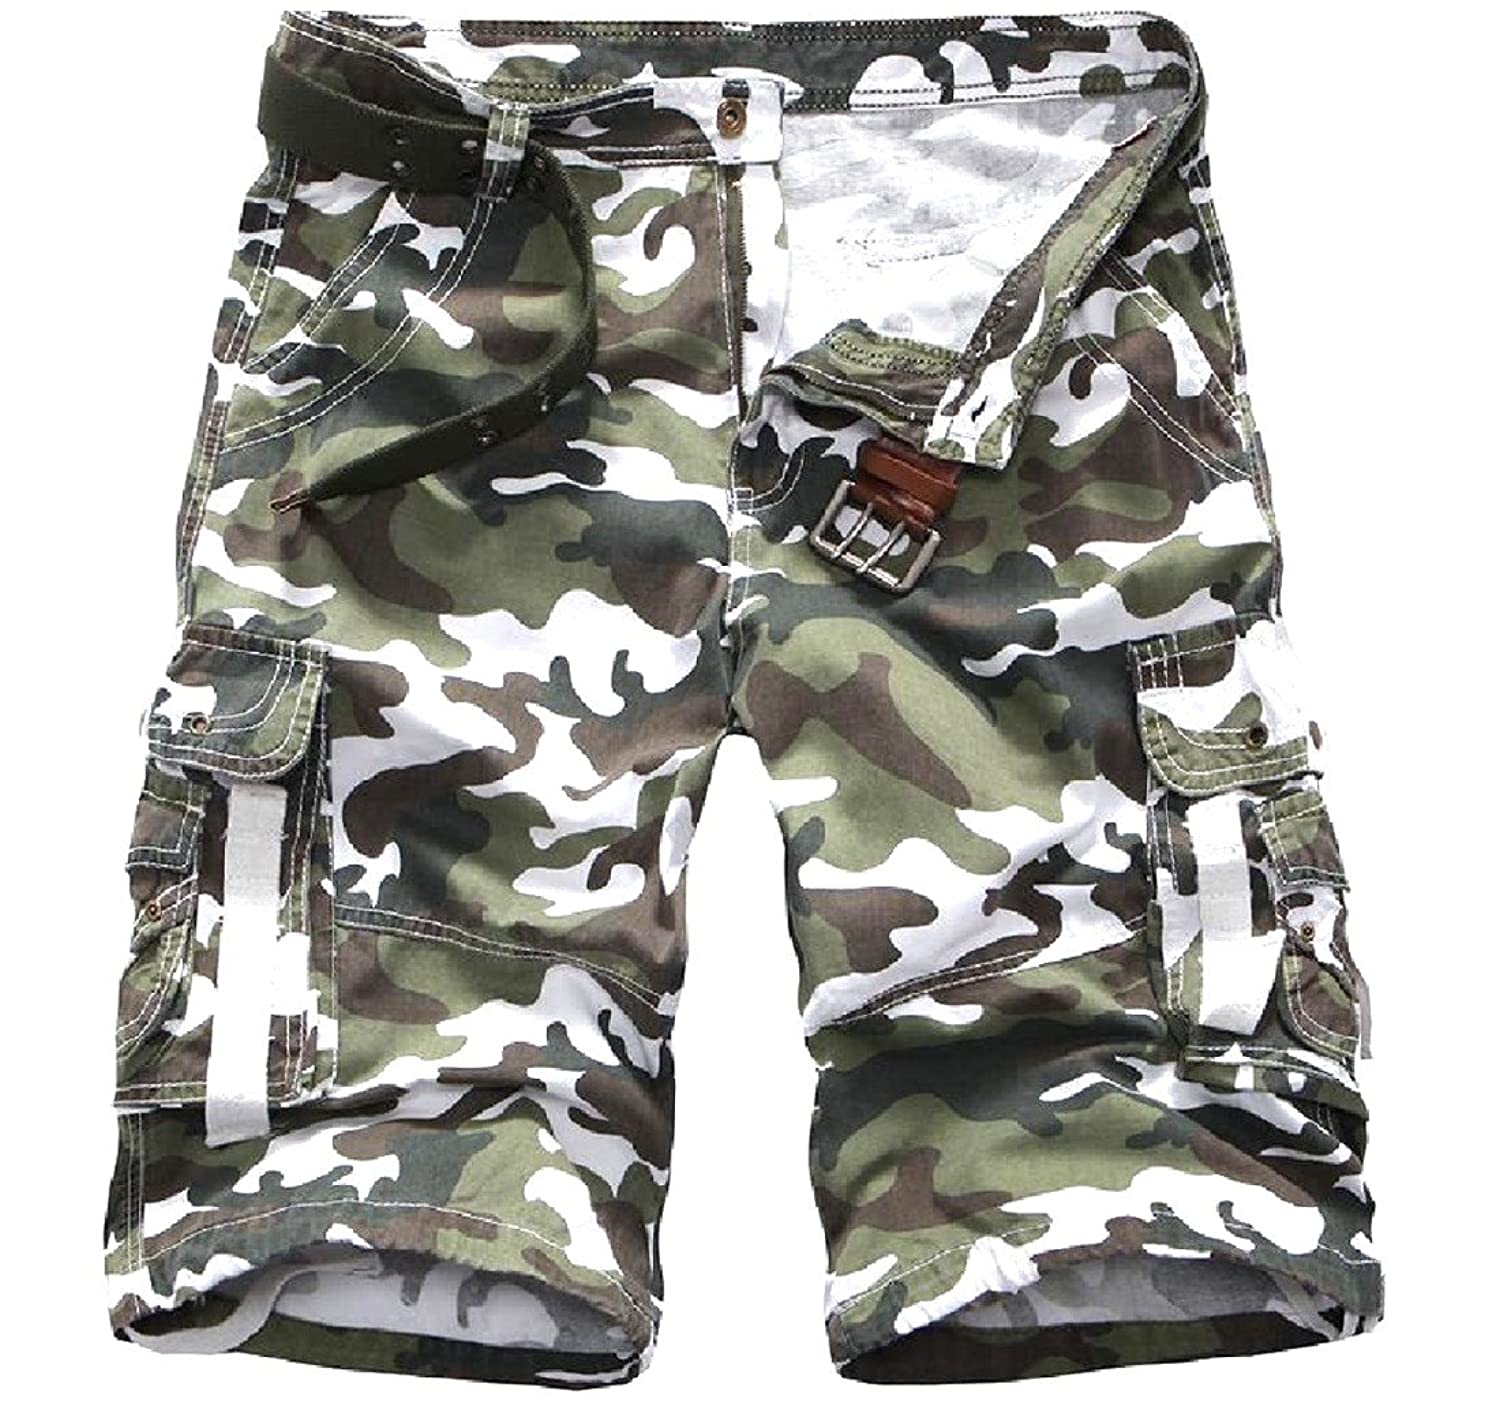 bb18c48a1d 30%OFF Coolred Mens Camouflage Color Zipper Comfy Cargo Shorts without Belt